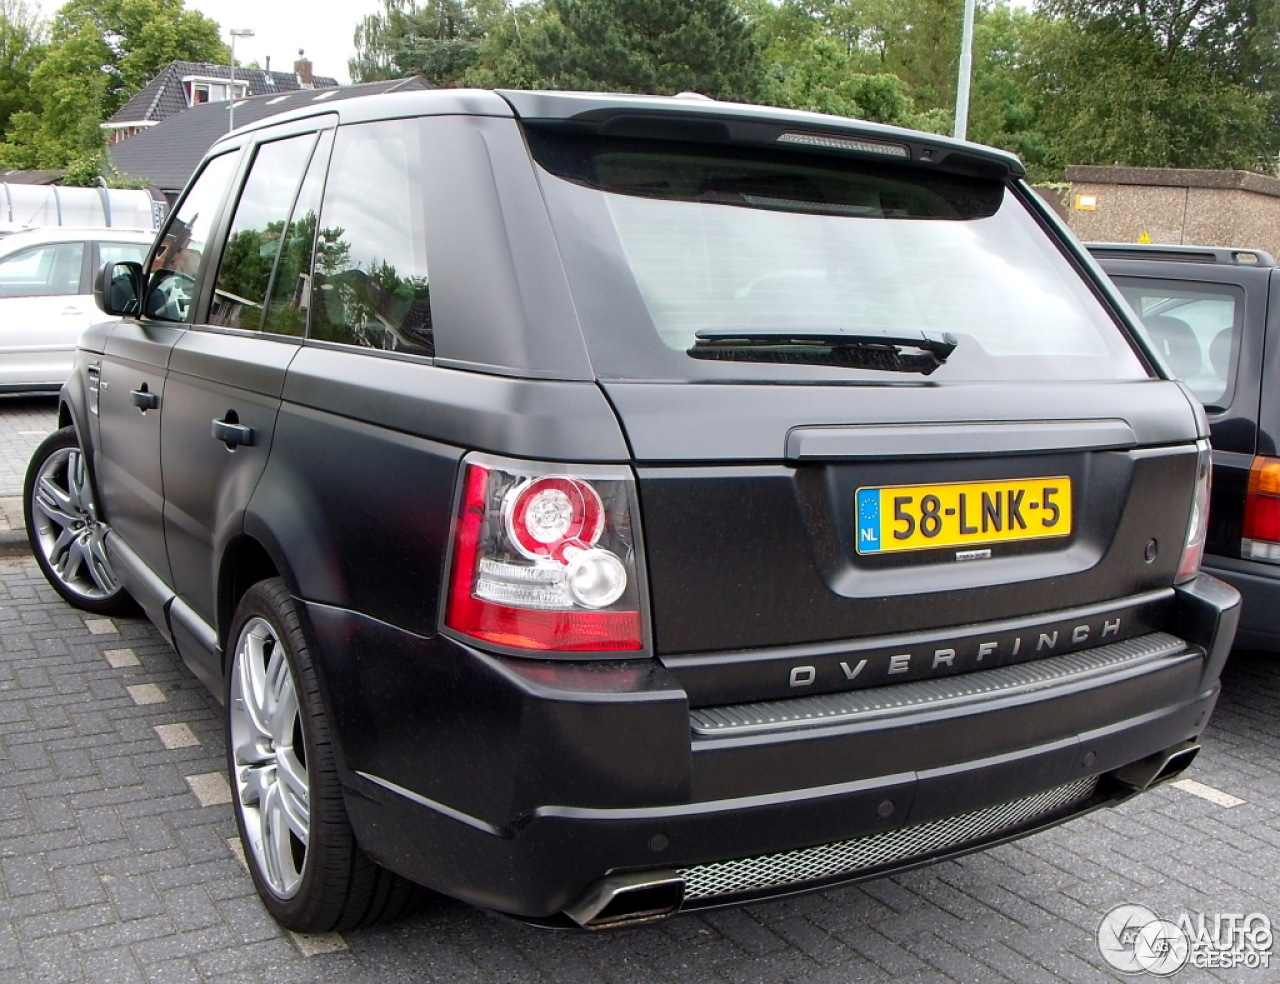 Land Rover Overfinch Range Rover Sport Supercharged - 6 ...